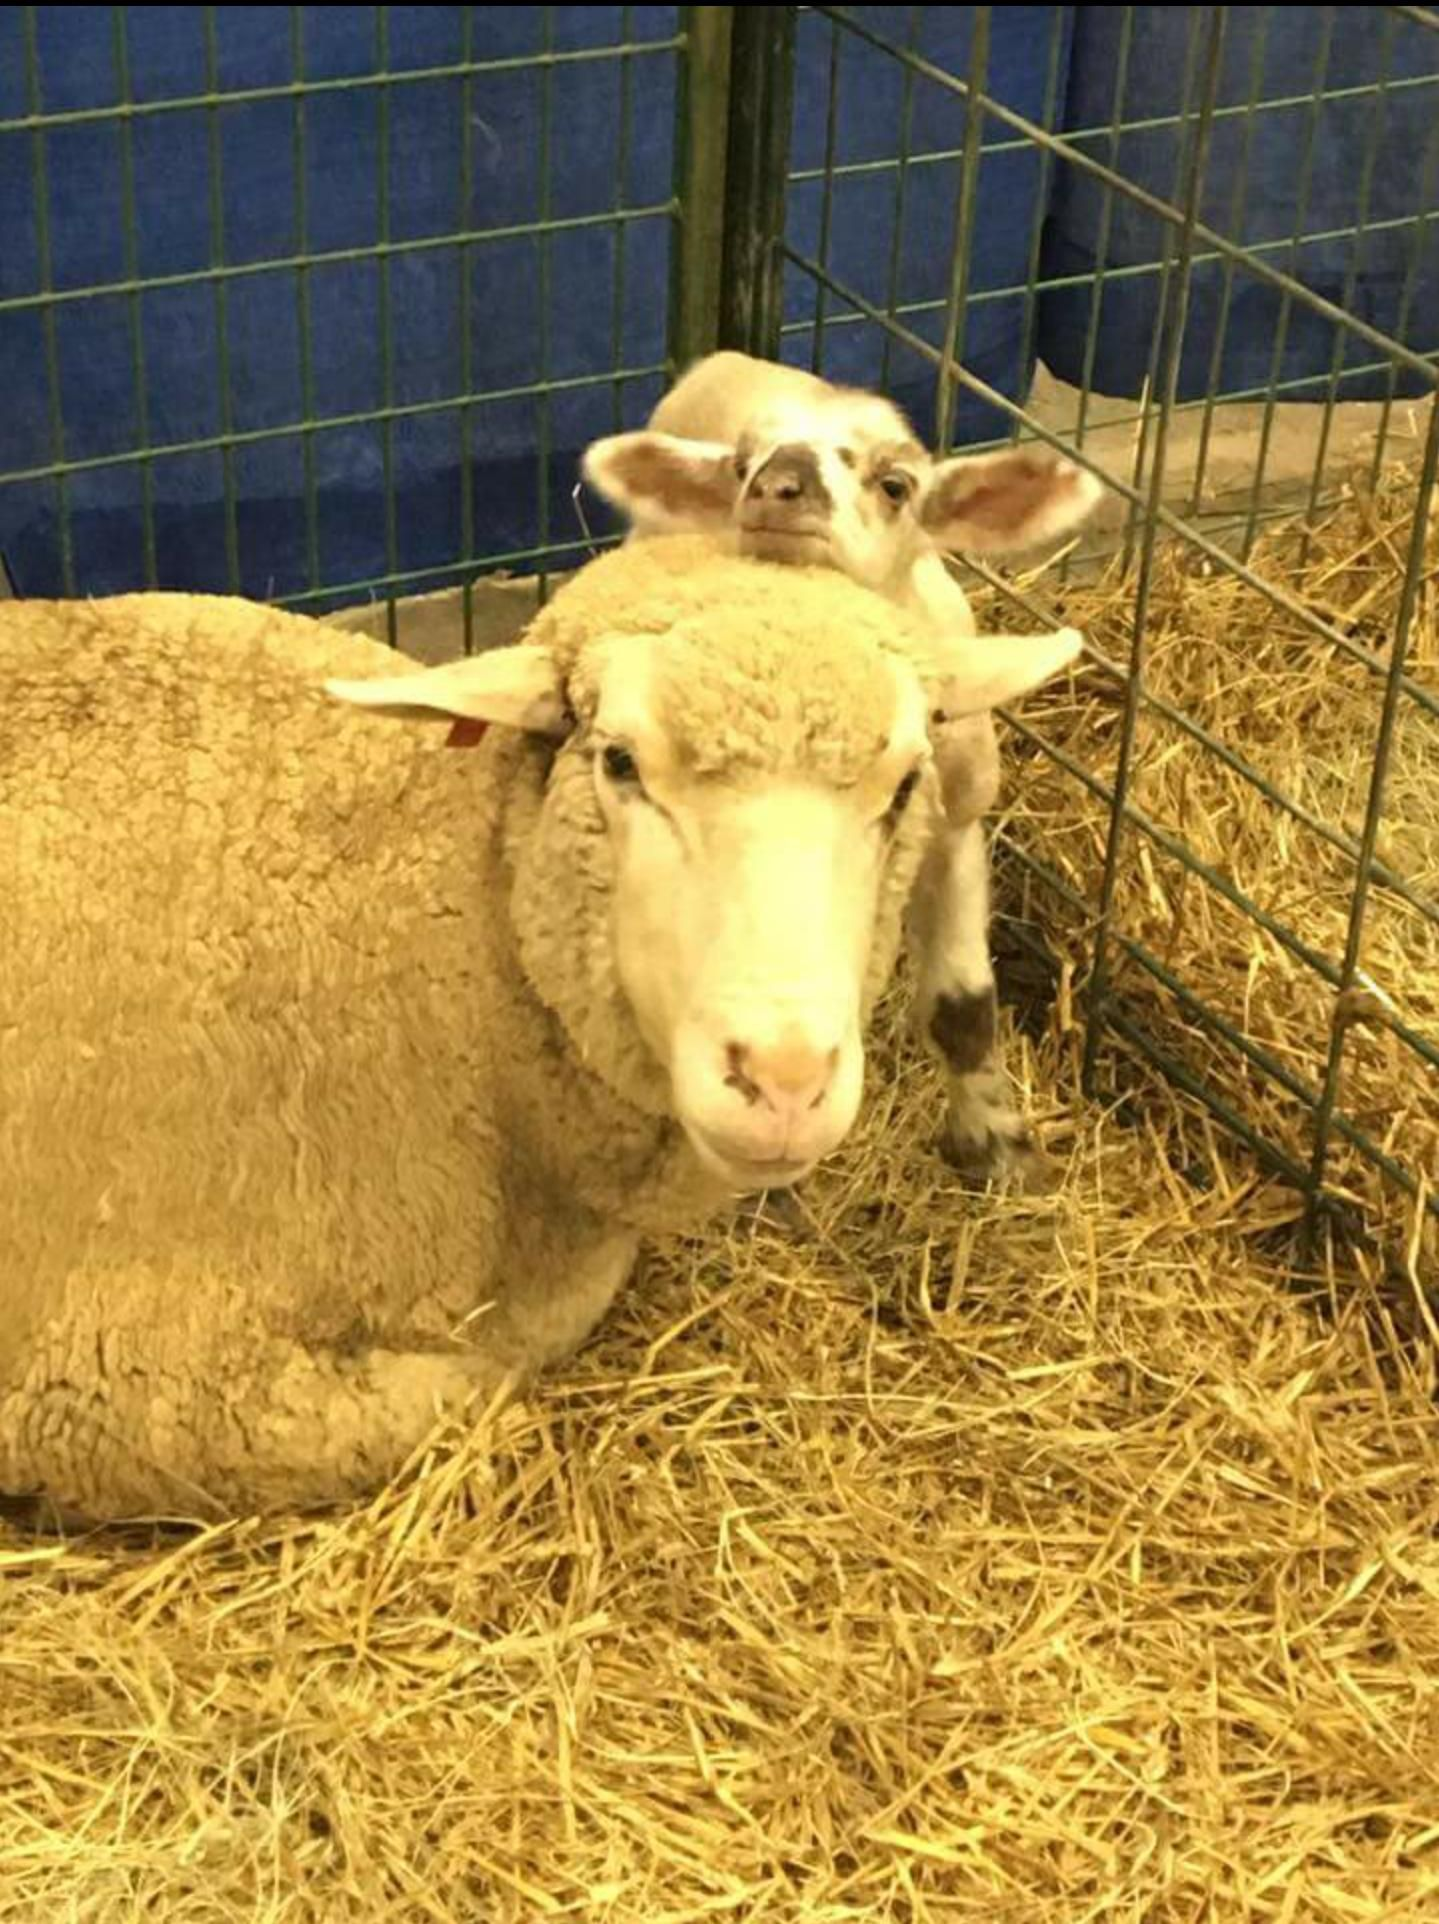 This little guy was born 5 days ago at the Tulsa State Fair http://ift.tt/2dilYPB